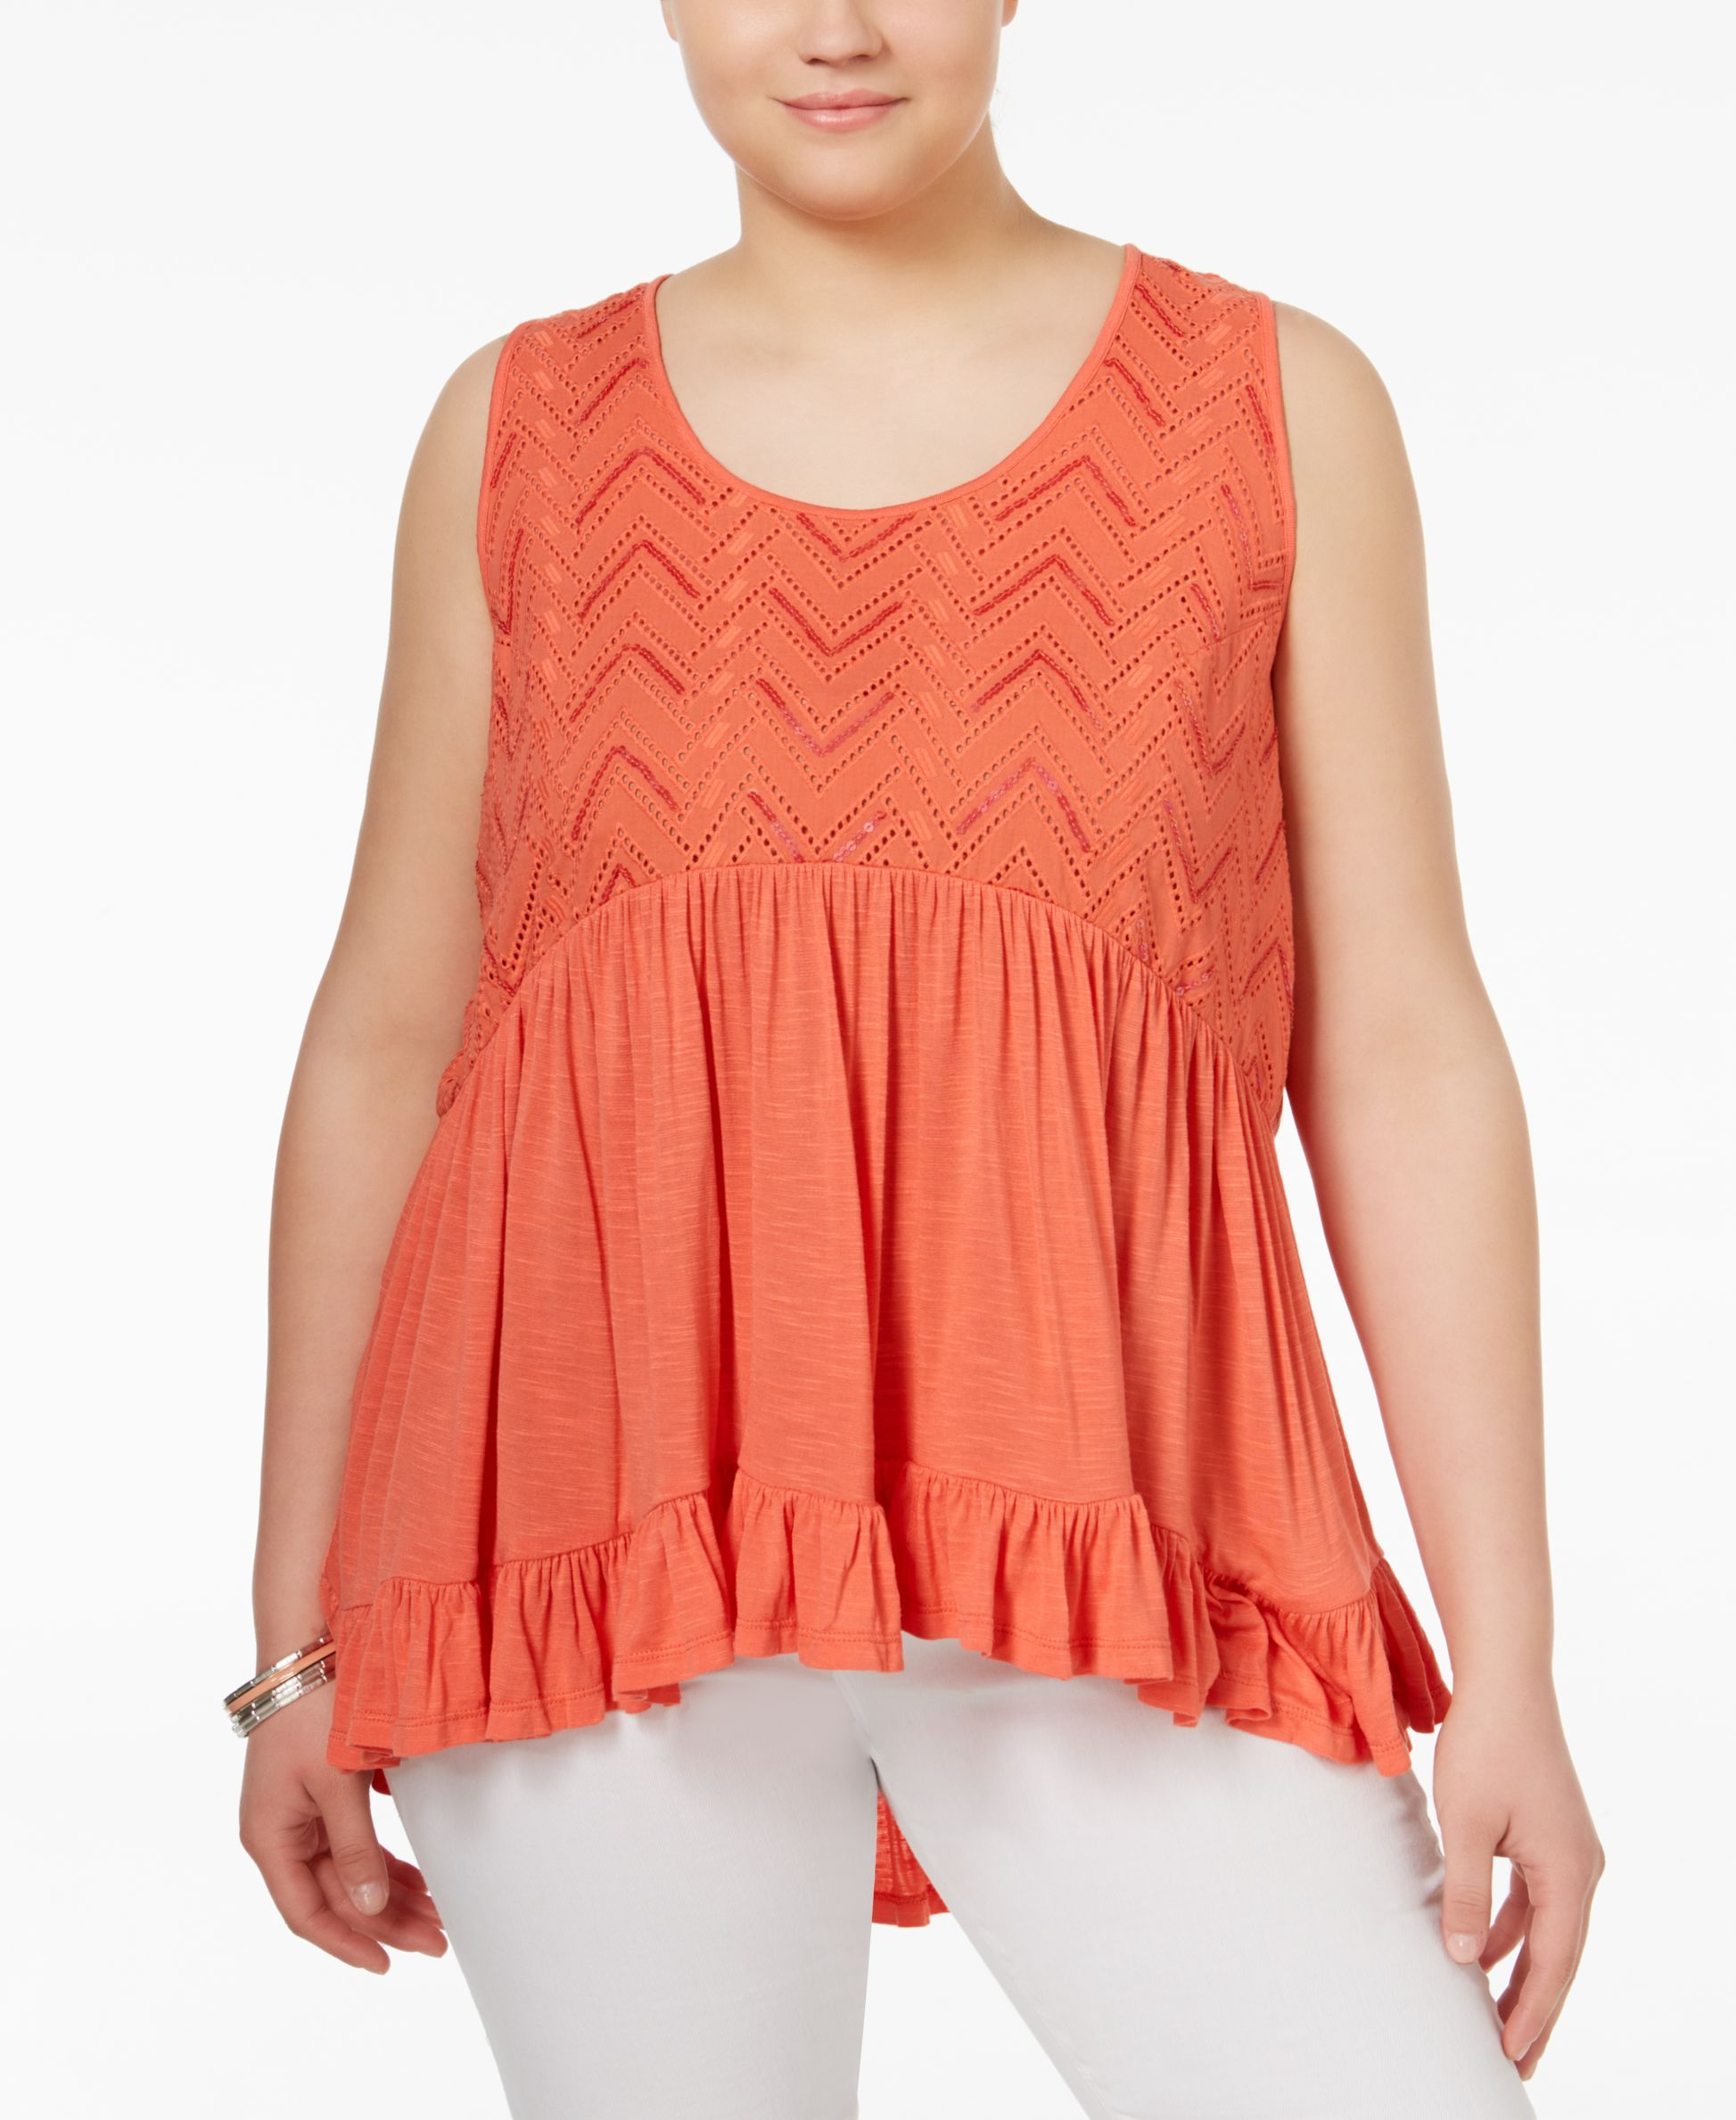 American Rag Plus Size Ruffled Eyelet Top, Only at Macy's